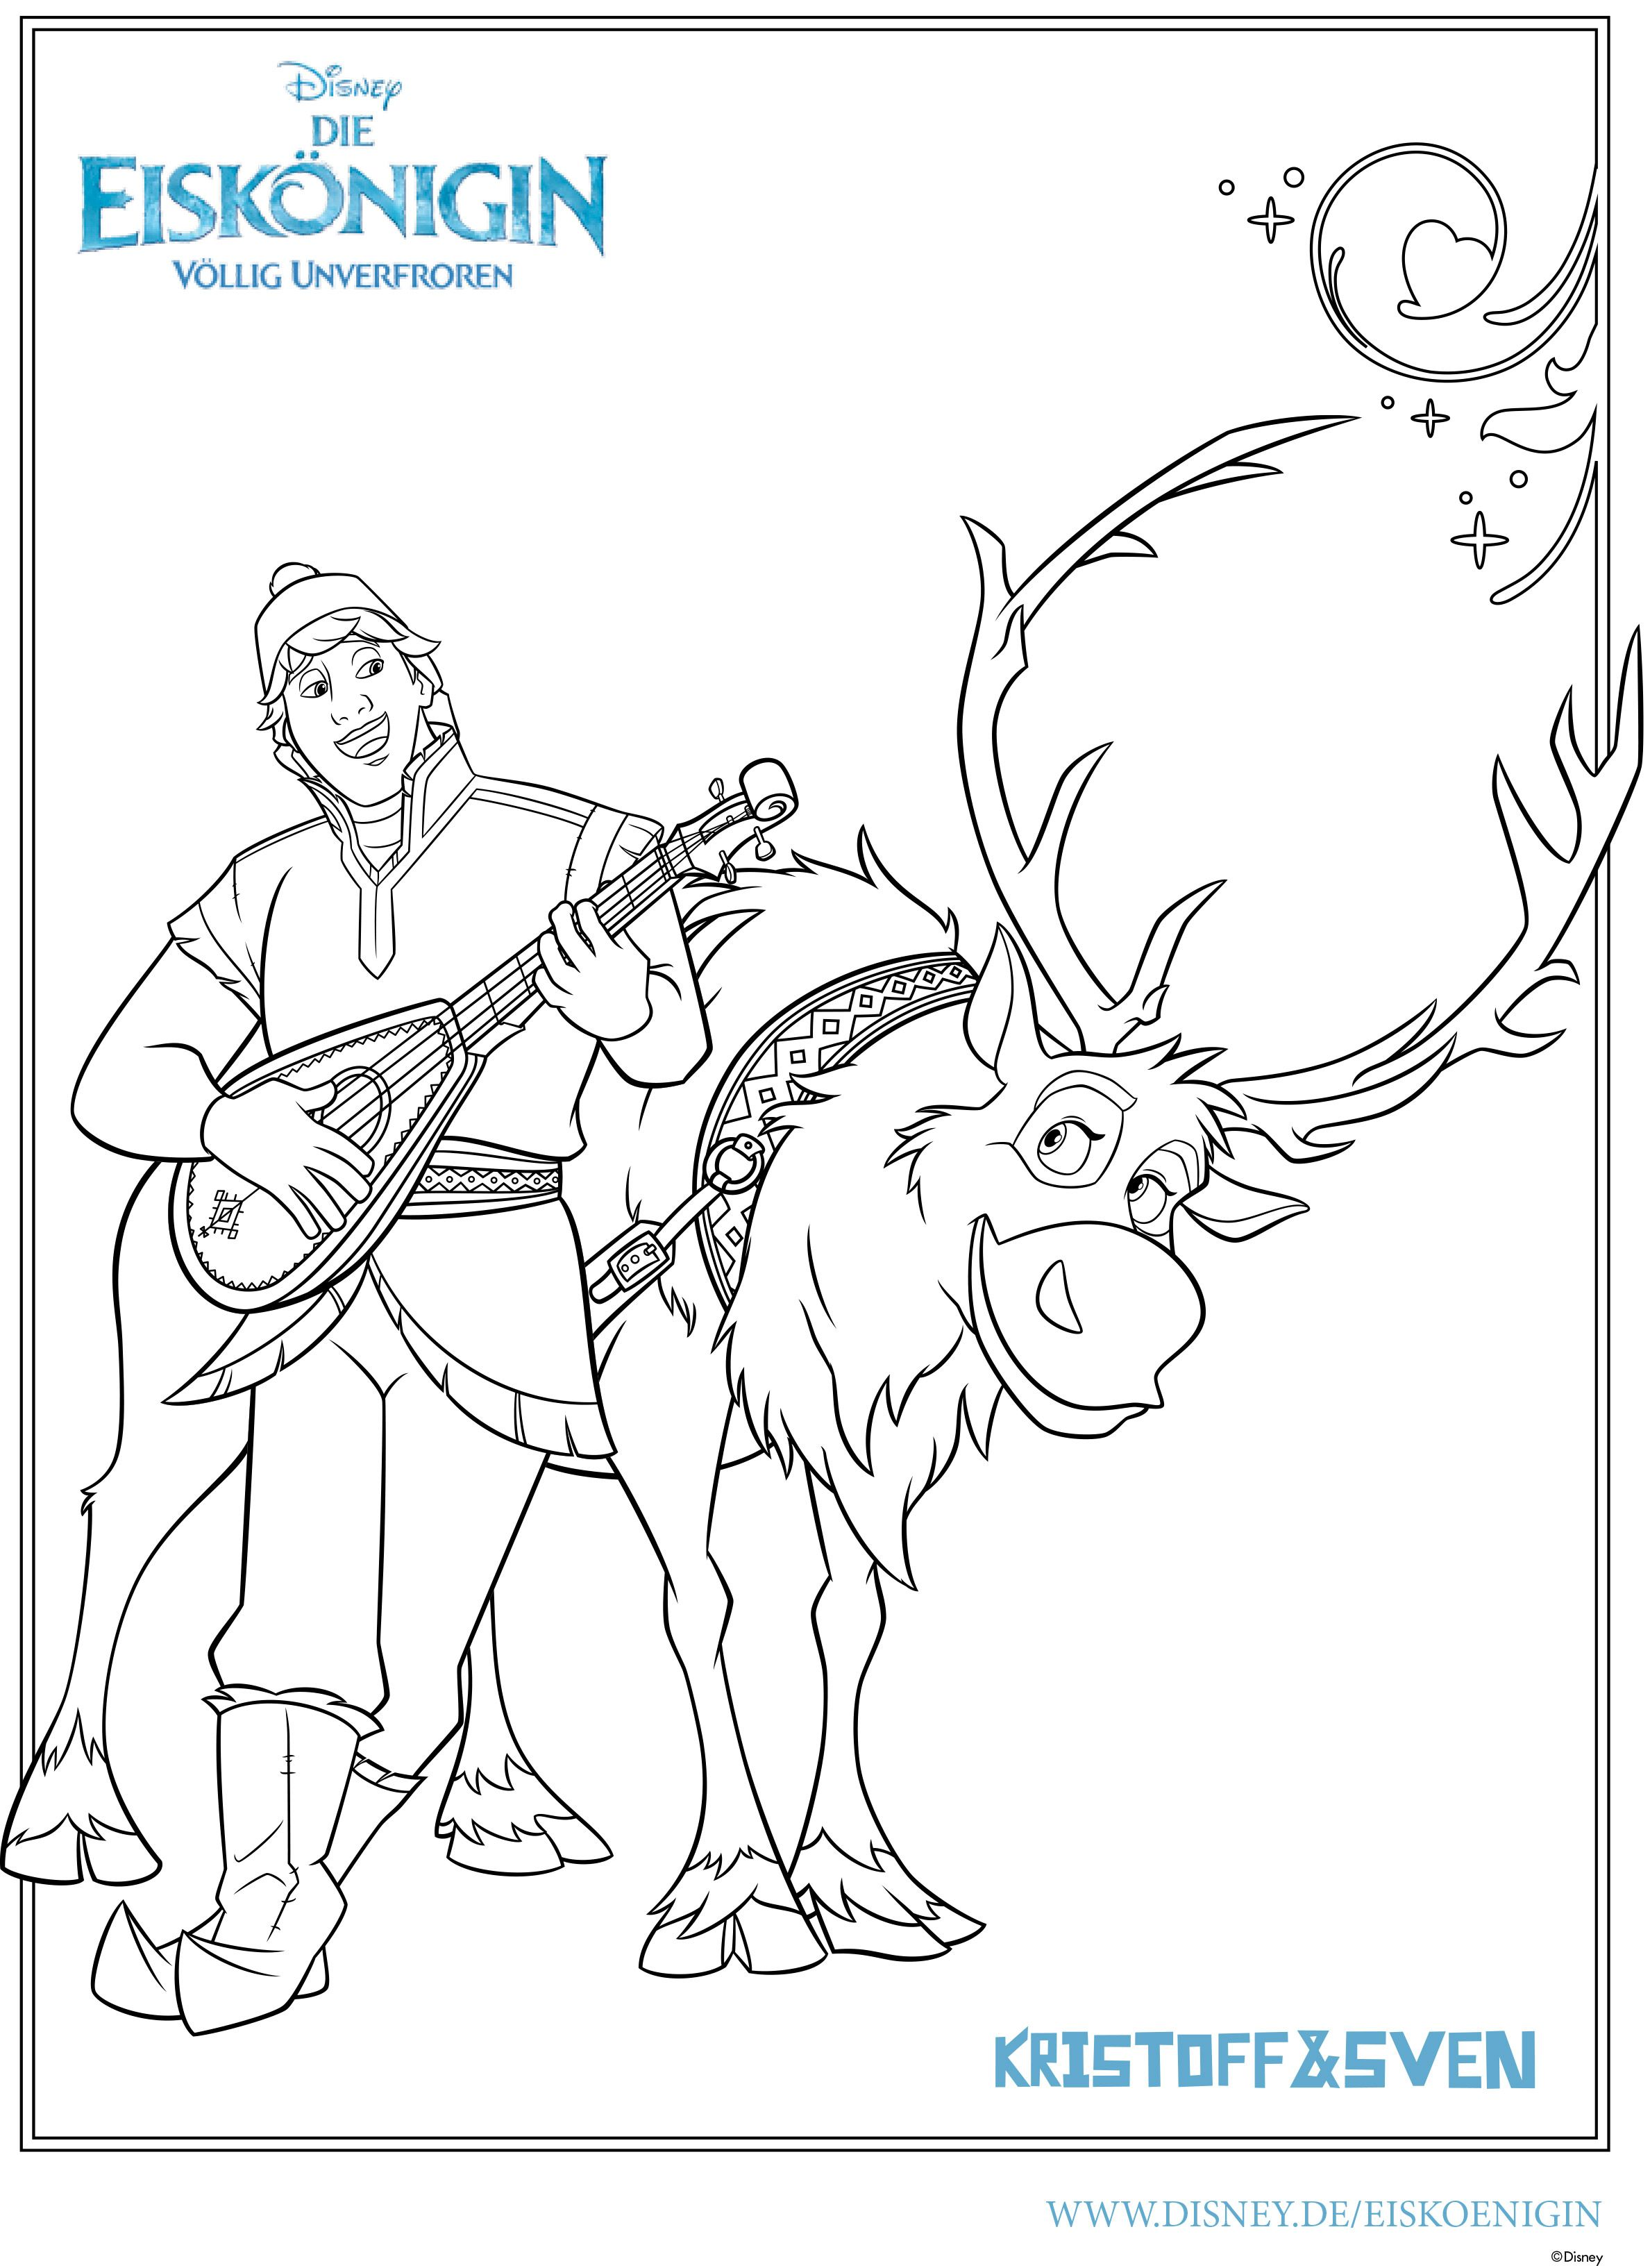 73763 Ausmalbilder Eiskoning Kristoff 01 A1cc3942 Jpeg 2377 3267 Disney Coloring Pages Disney Princess Coloring Pages Disney Princess Colors